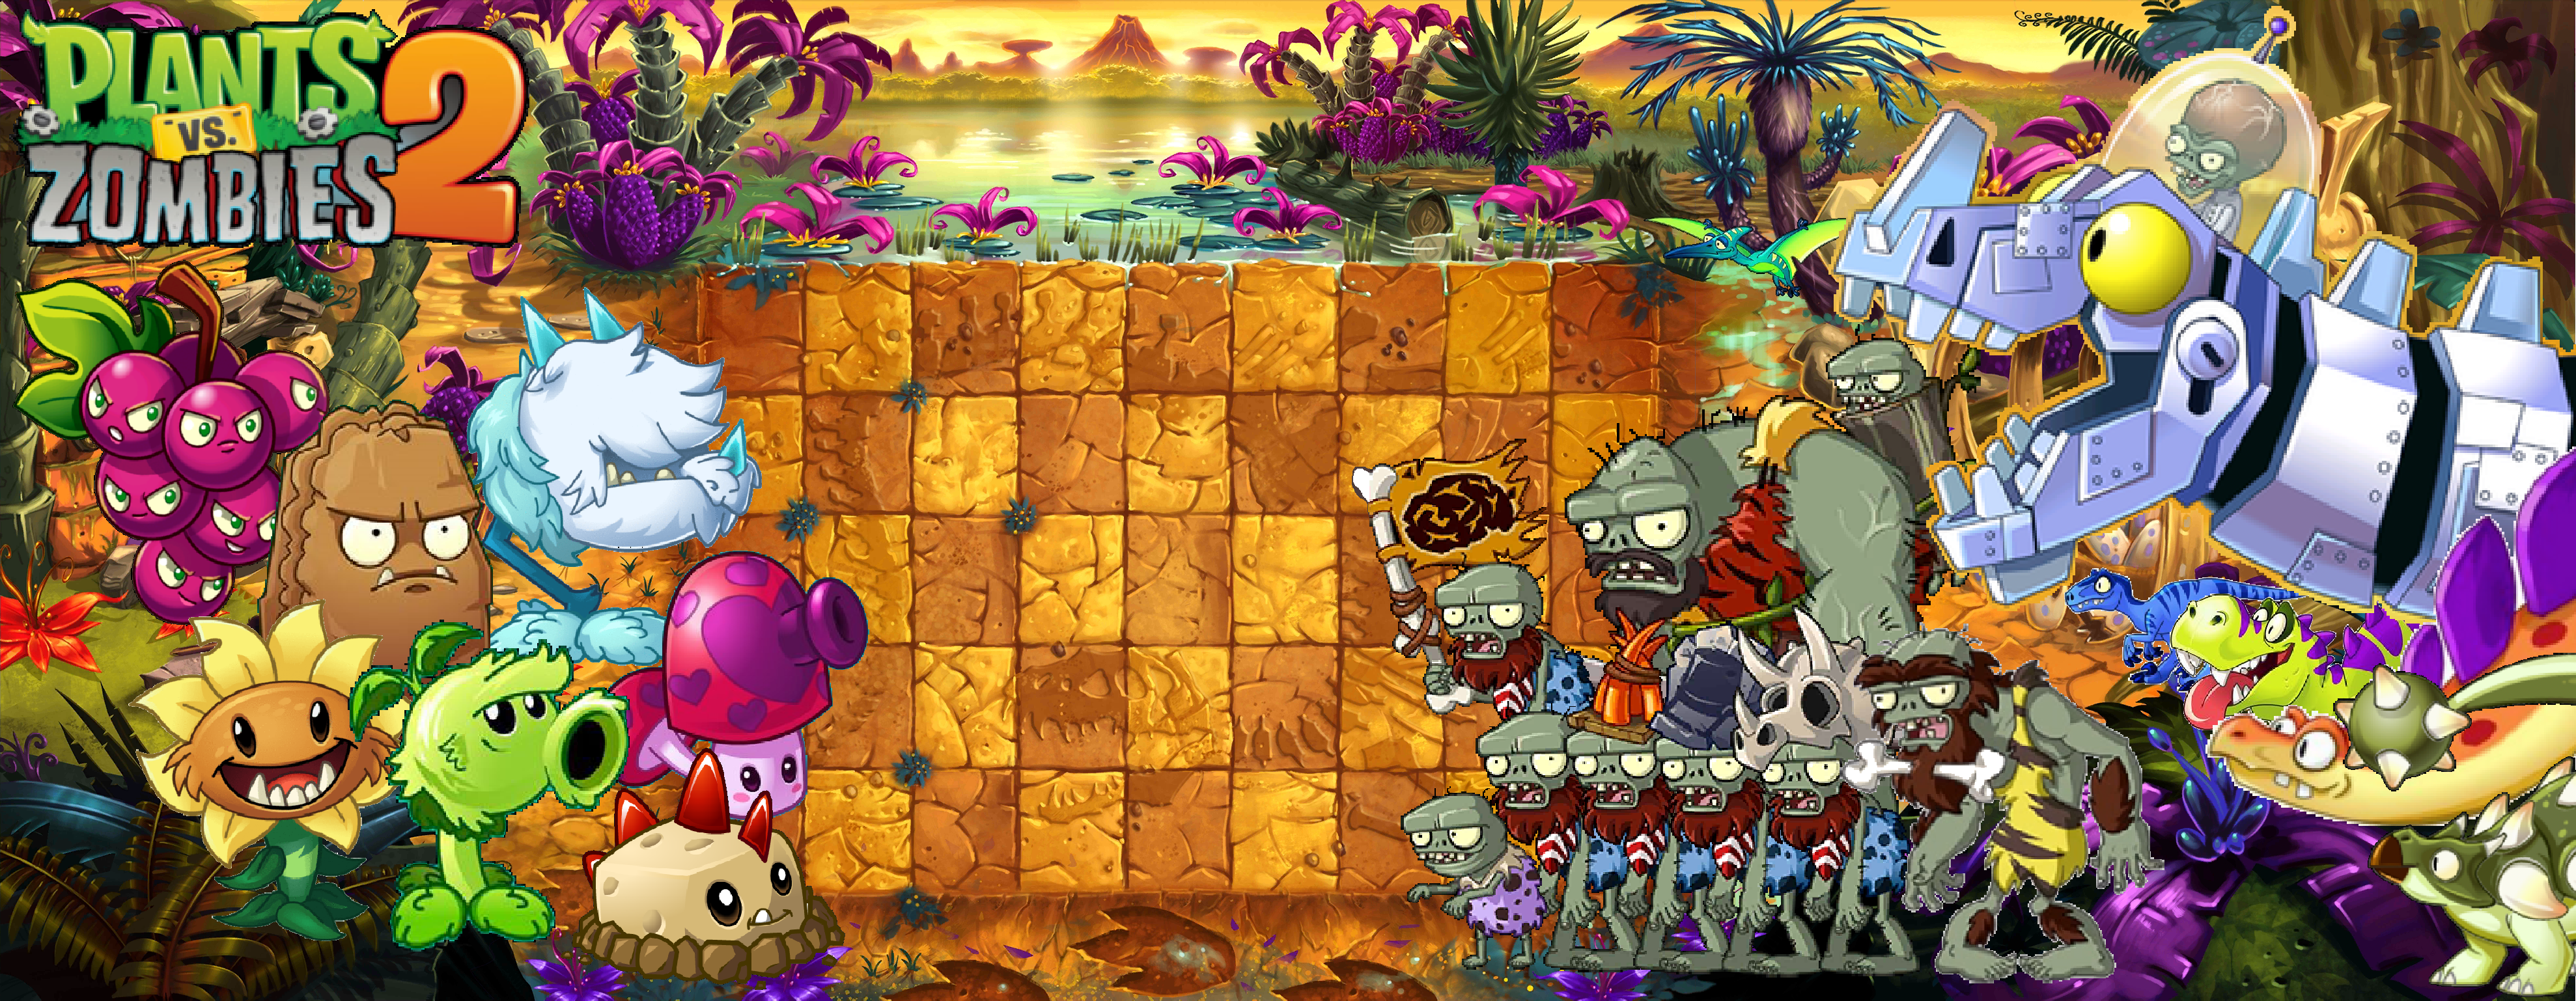 Plants Vs Zombies 2 Wallpapers Top Free Plants Vs Zombies 2